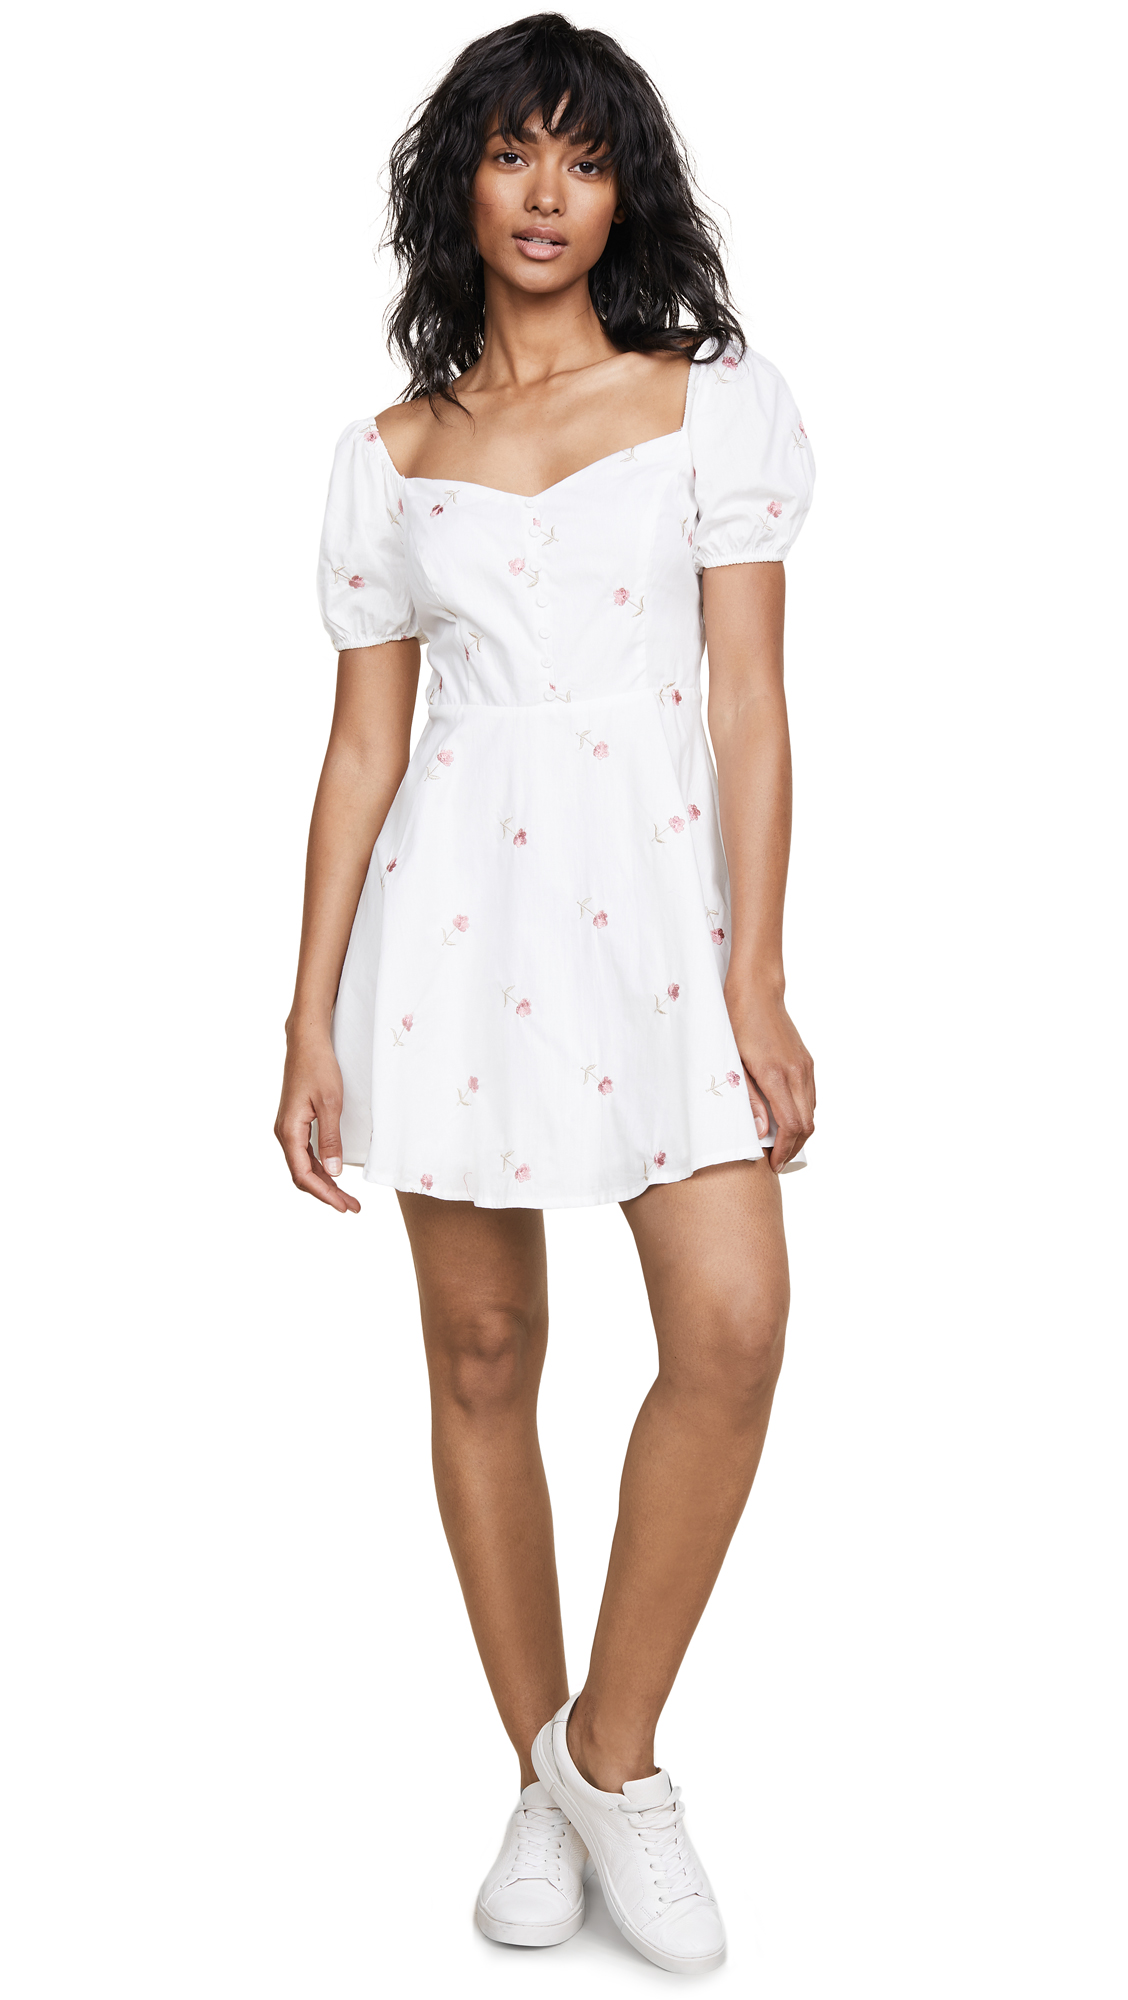 re: named Frill Embroidered Dress - White/Rose